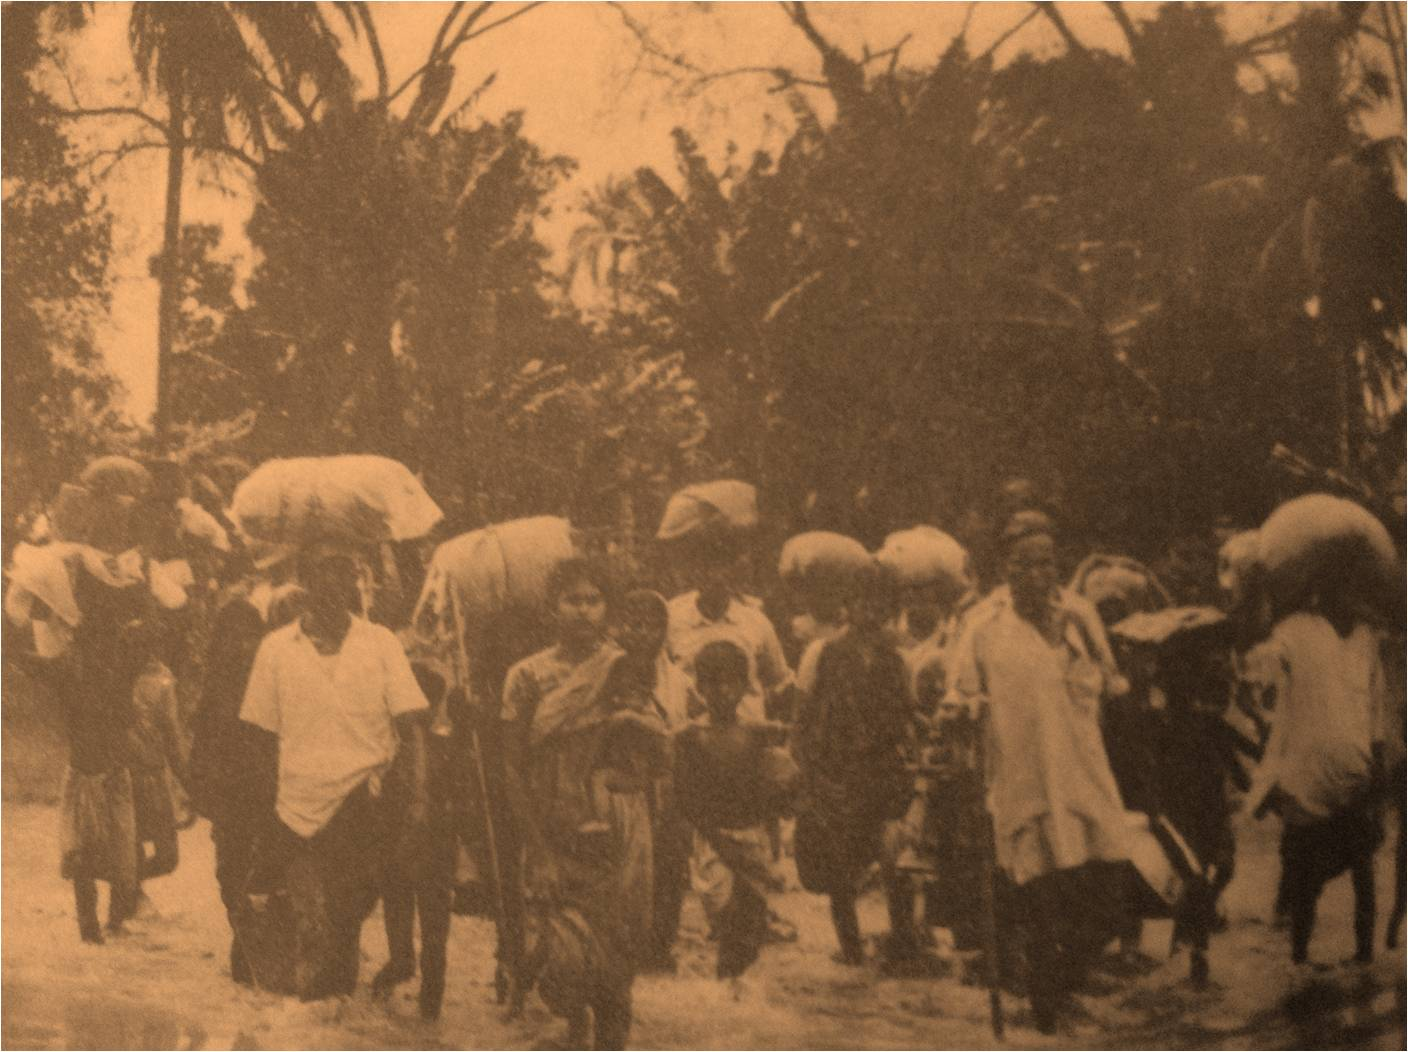 Refugees arriving in India in 1971